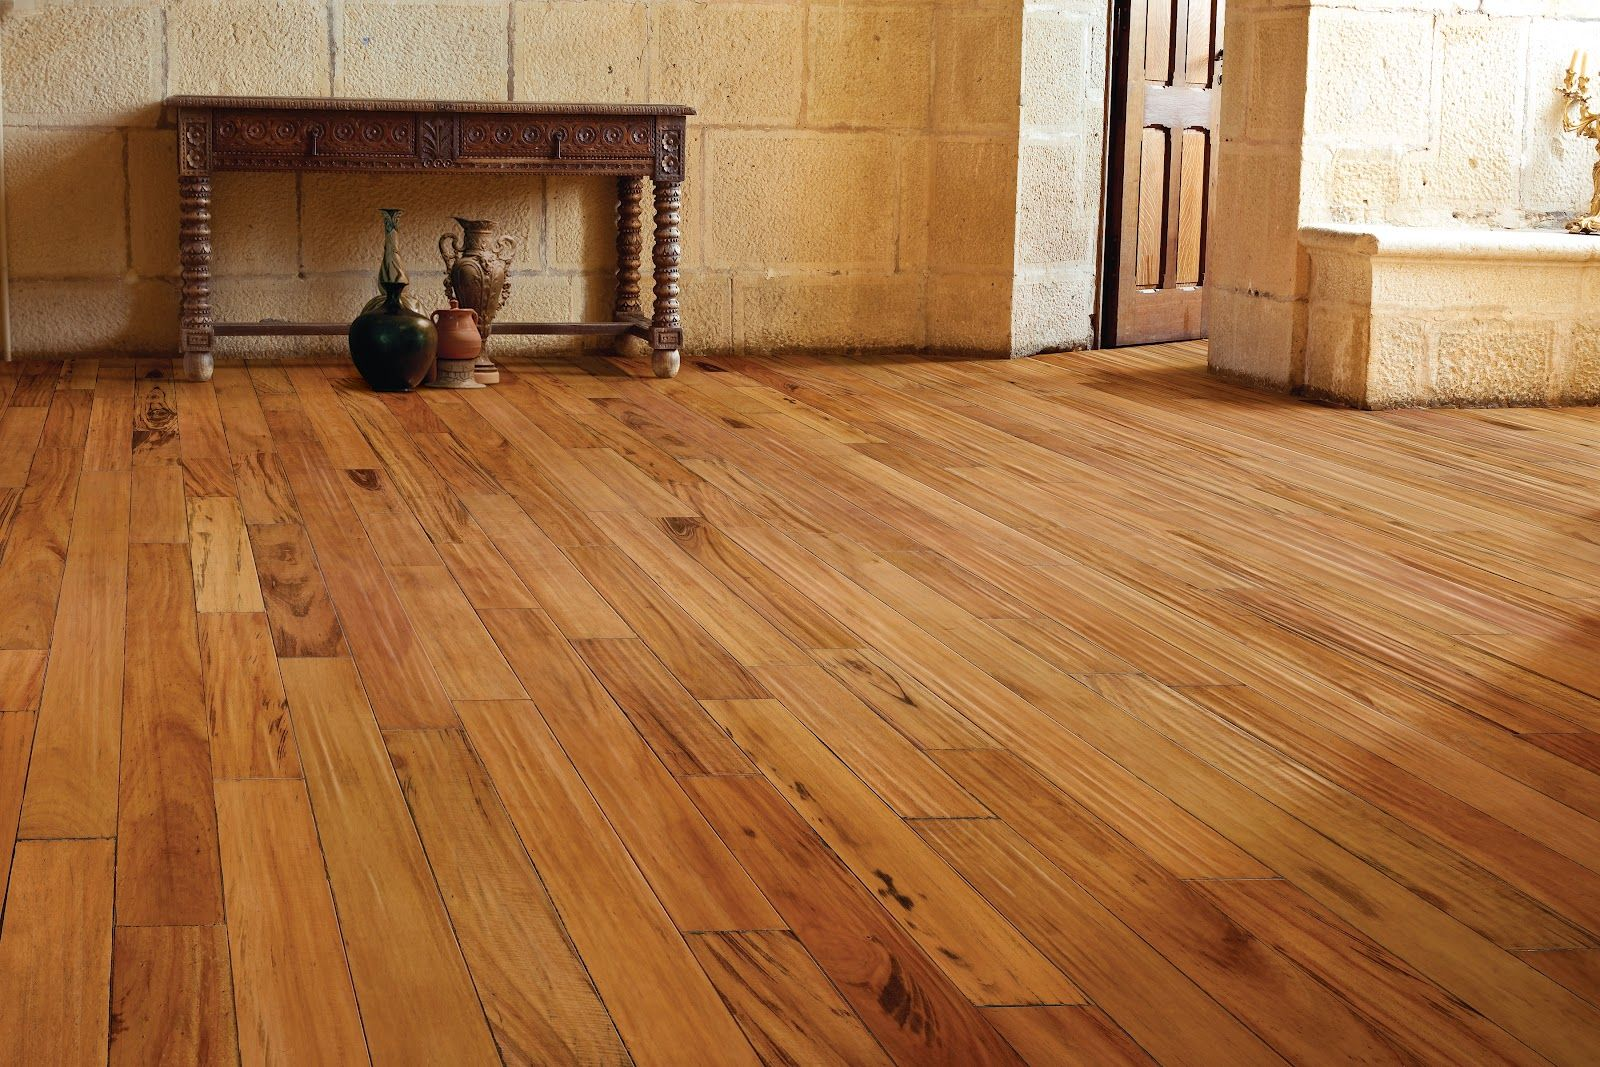 Floor design heavenly home interior and flooring ideas using floor design heavenly home interior and flooring ideas using light oak wood grain porcelain dailygadgetfo Choice Image